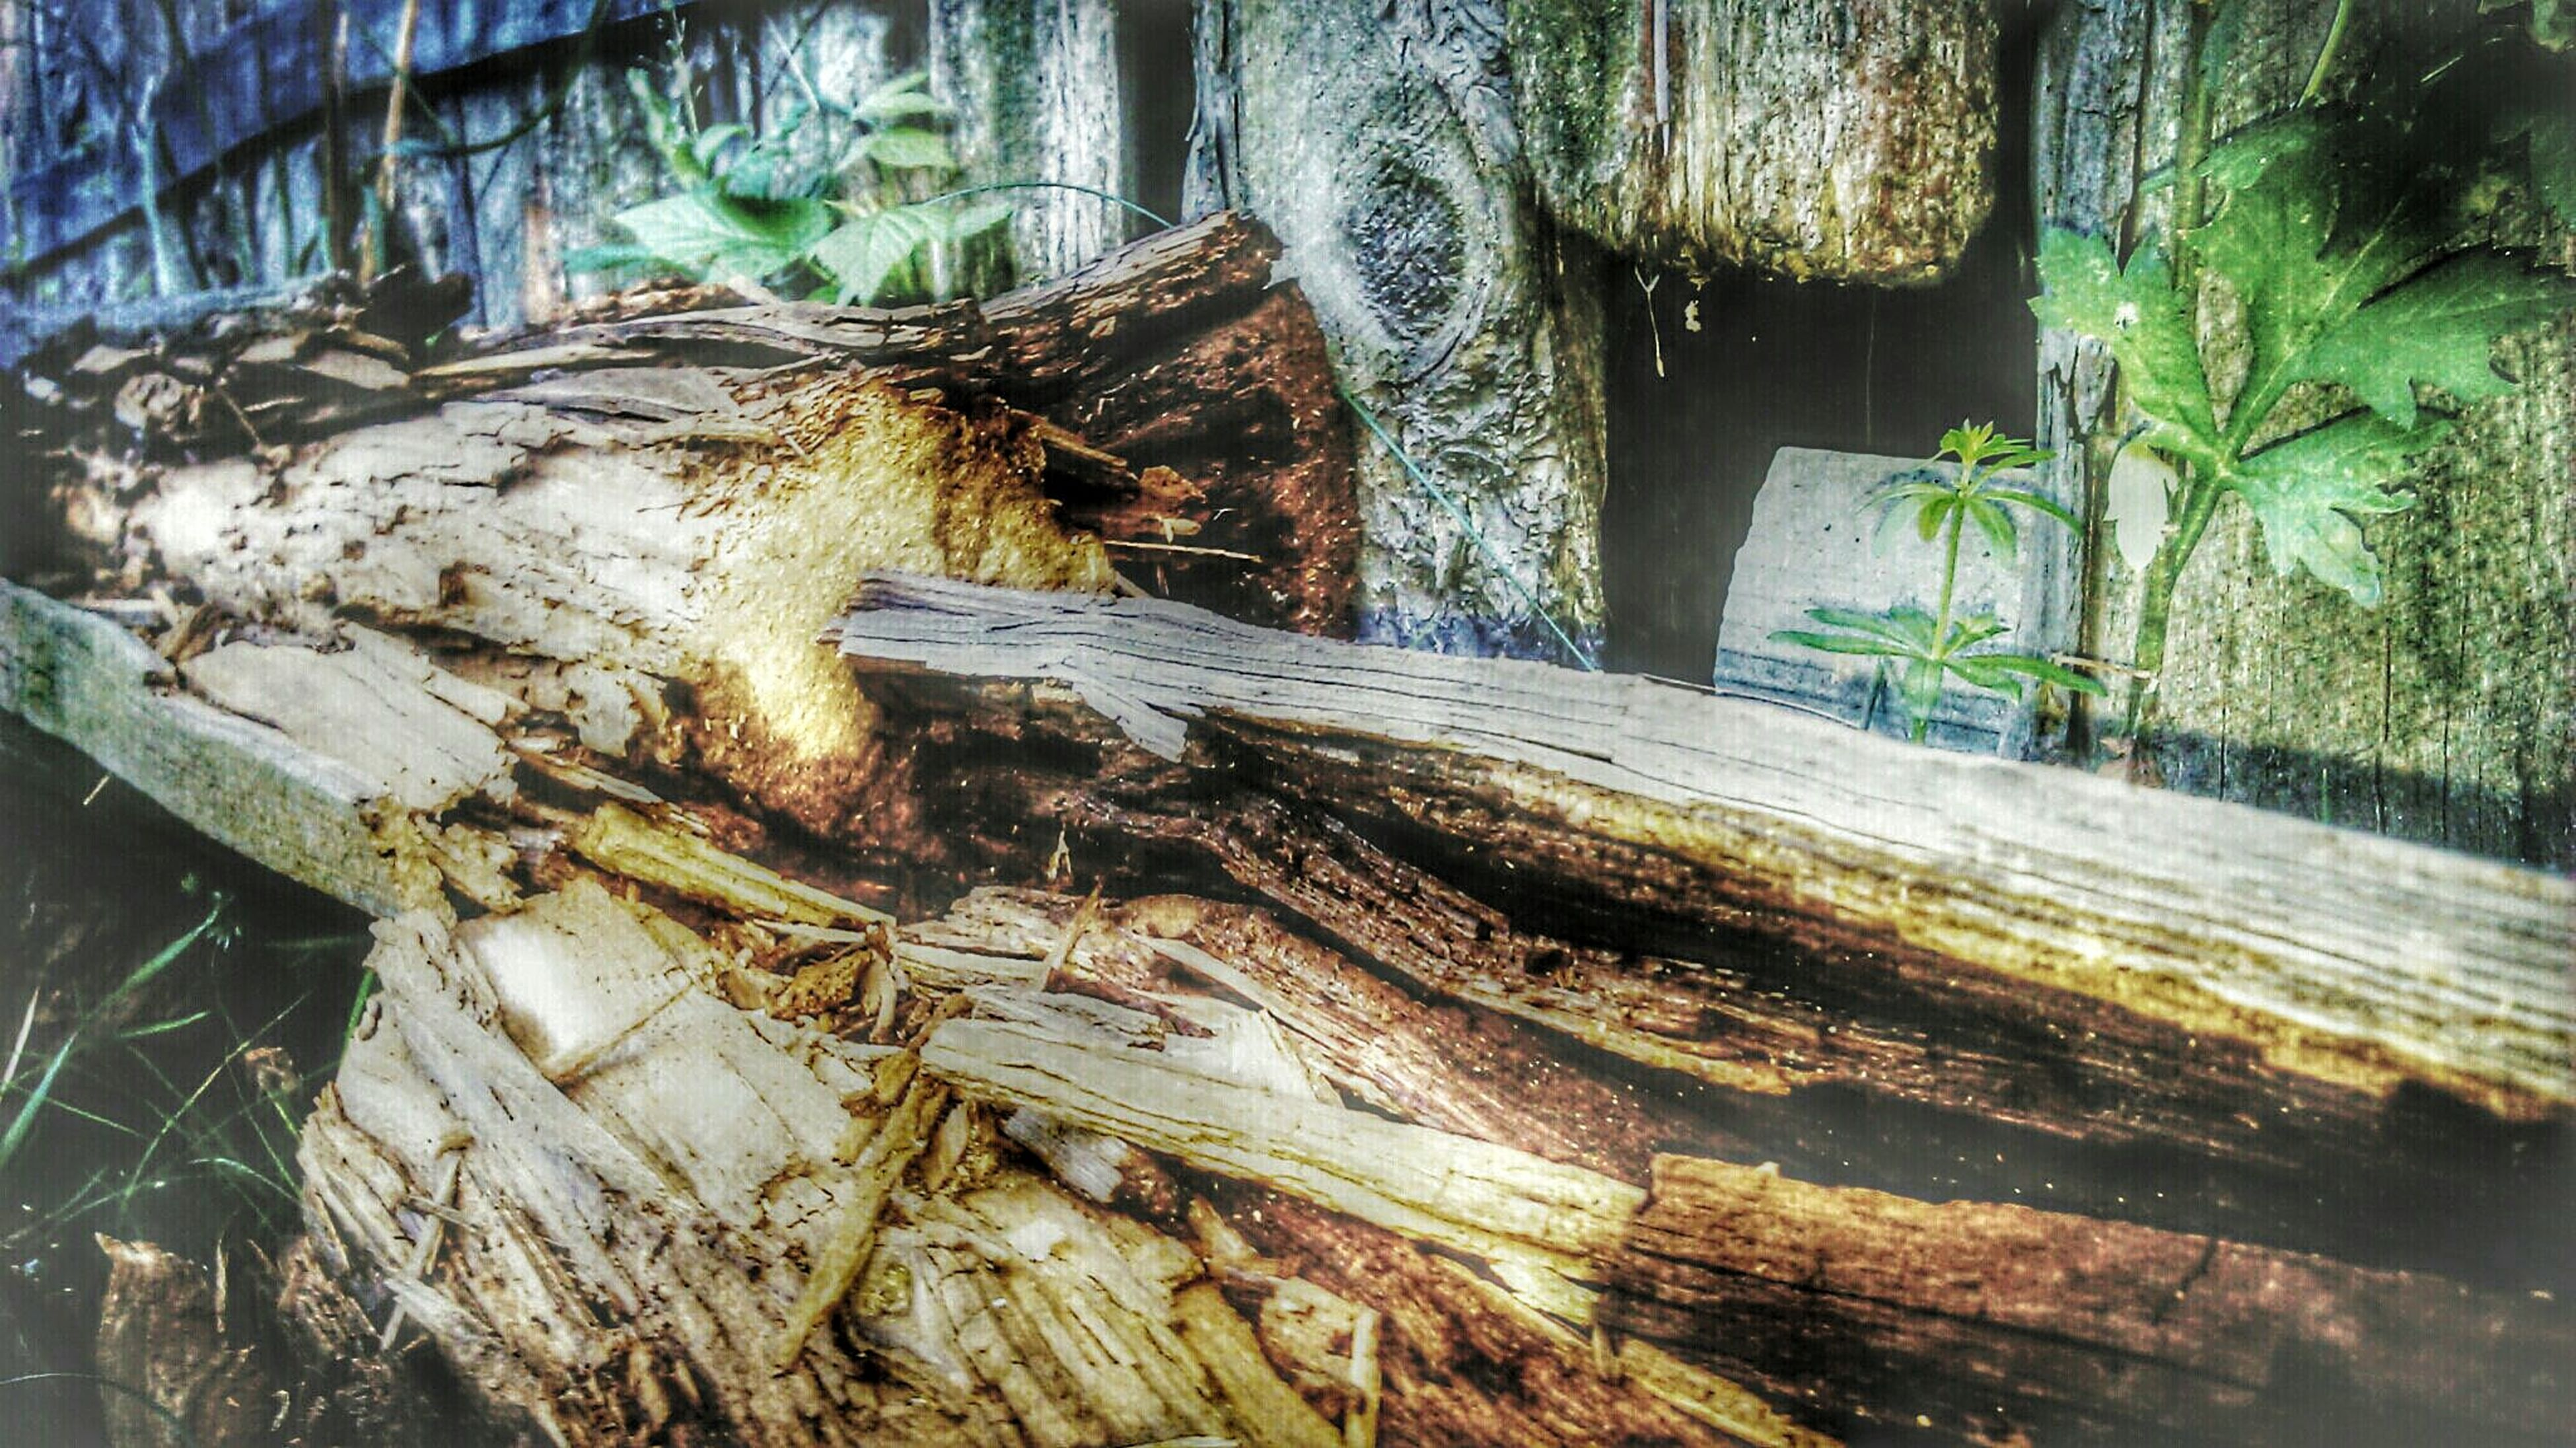 wood - material, tree, tree trunk, log, water, close-up, nature, forest, day, outdoors, wood, no people, textured, growth, beauty in nature, tranquility, high angle view, root, wooden, rock - object